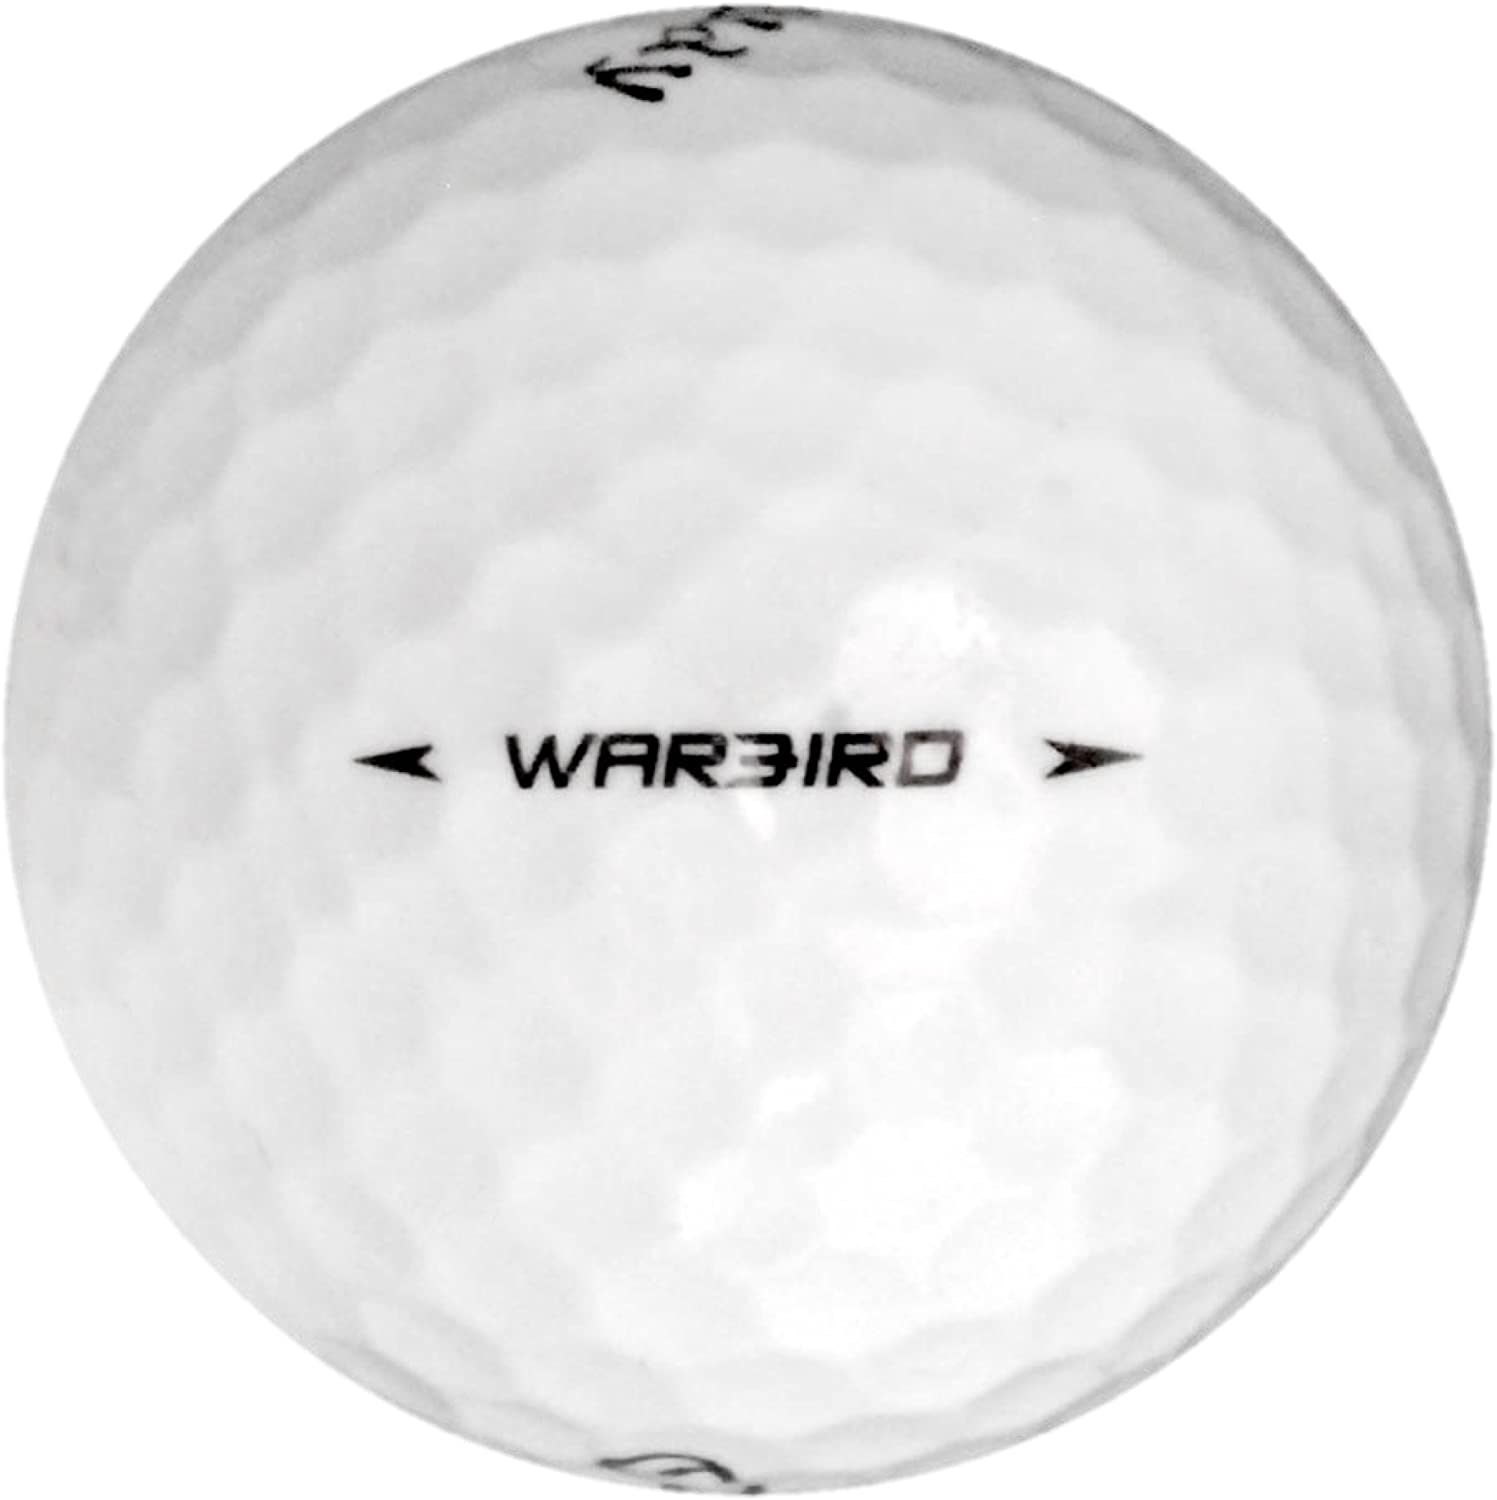 36 Callaway Warbird Golf Balls Mint condition – 3 Dozen